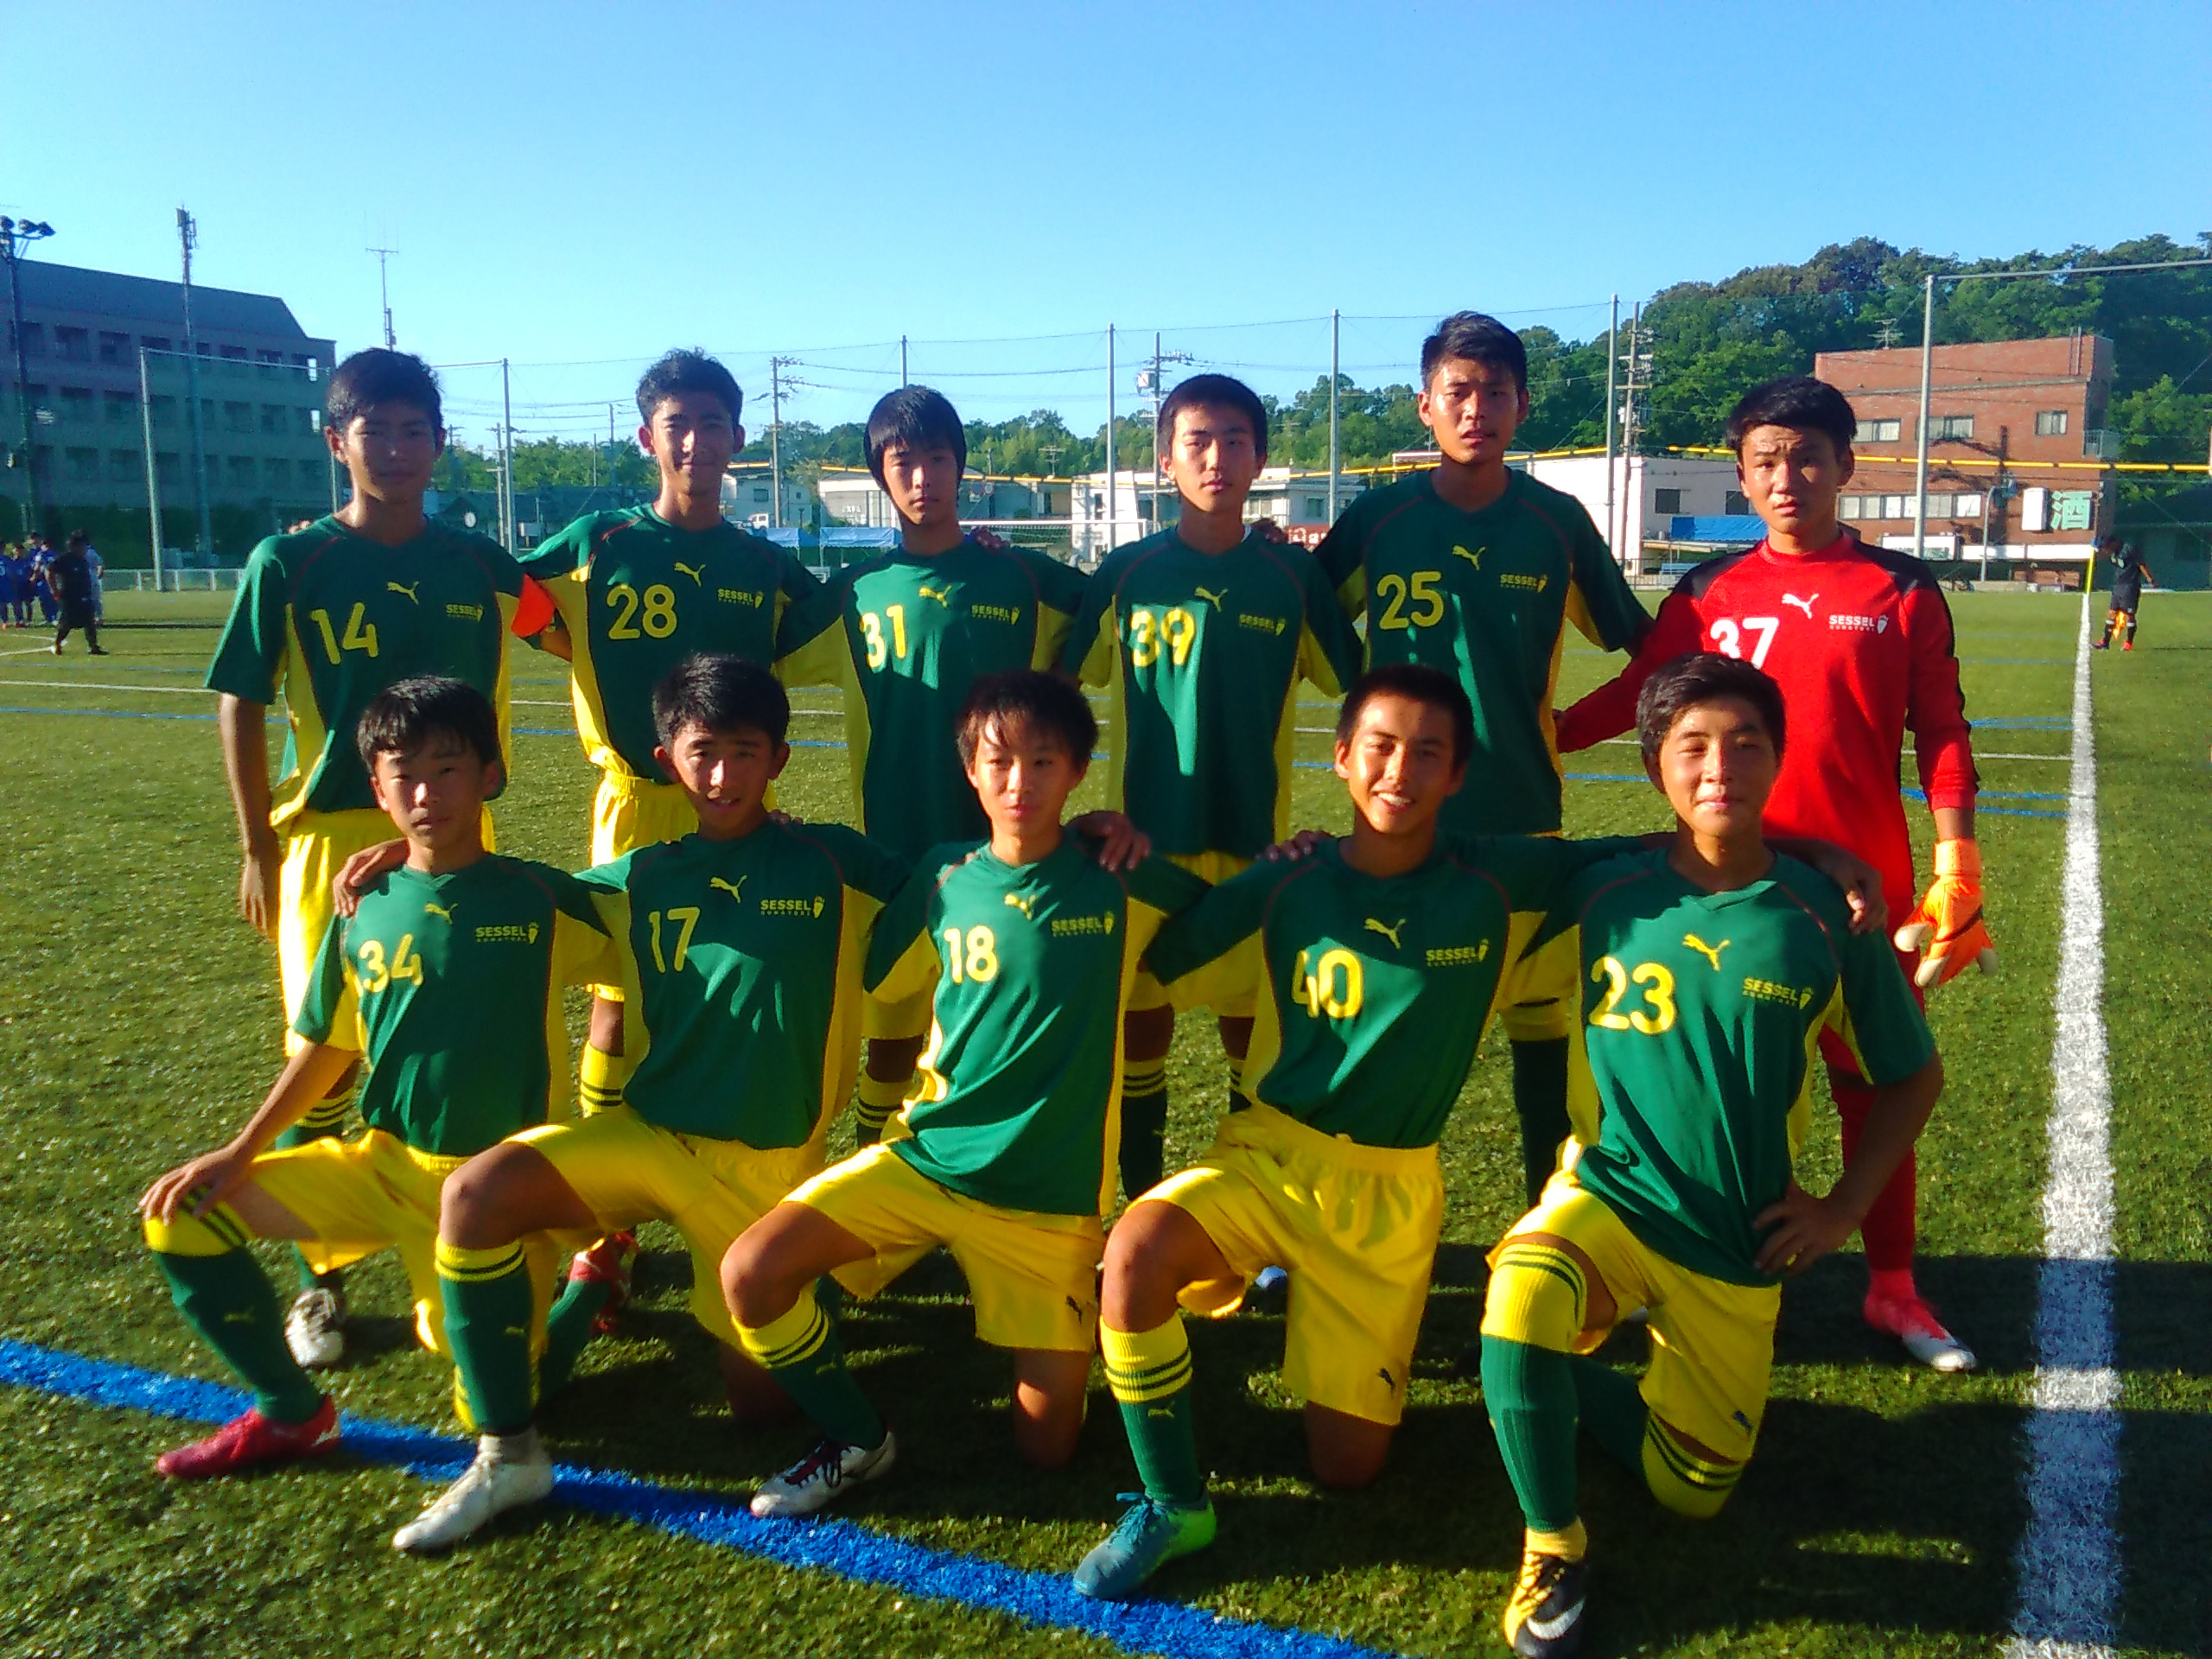 Football Sessel U15 試合の結果 8 25 Sessel Kumatori Football Culb Jy